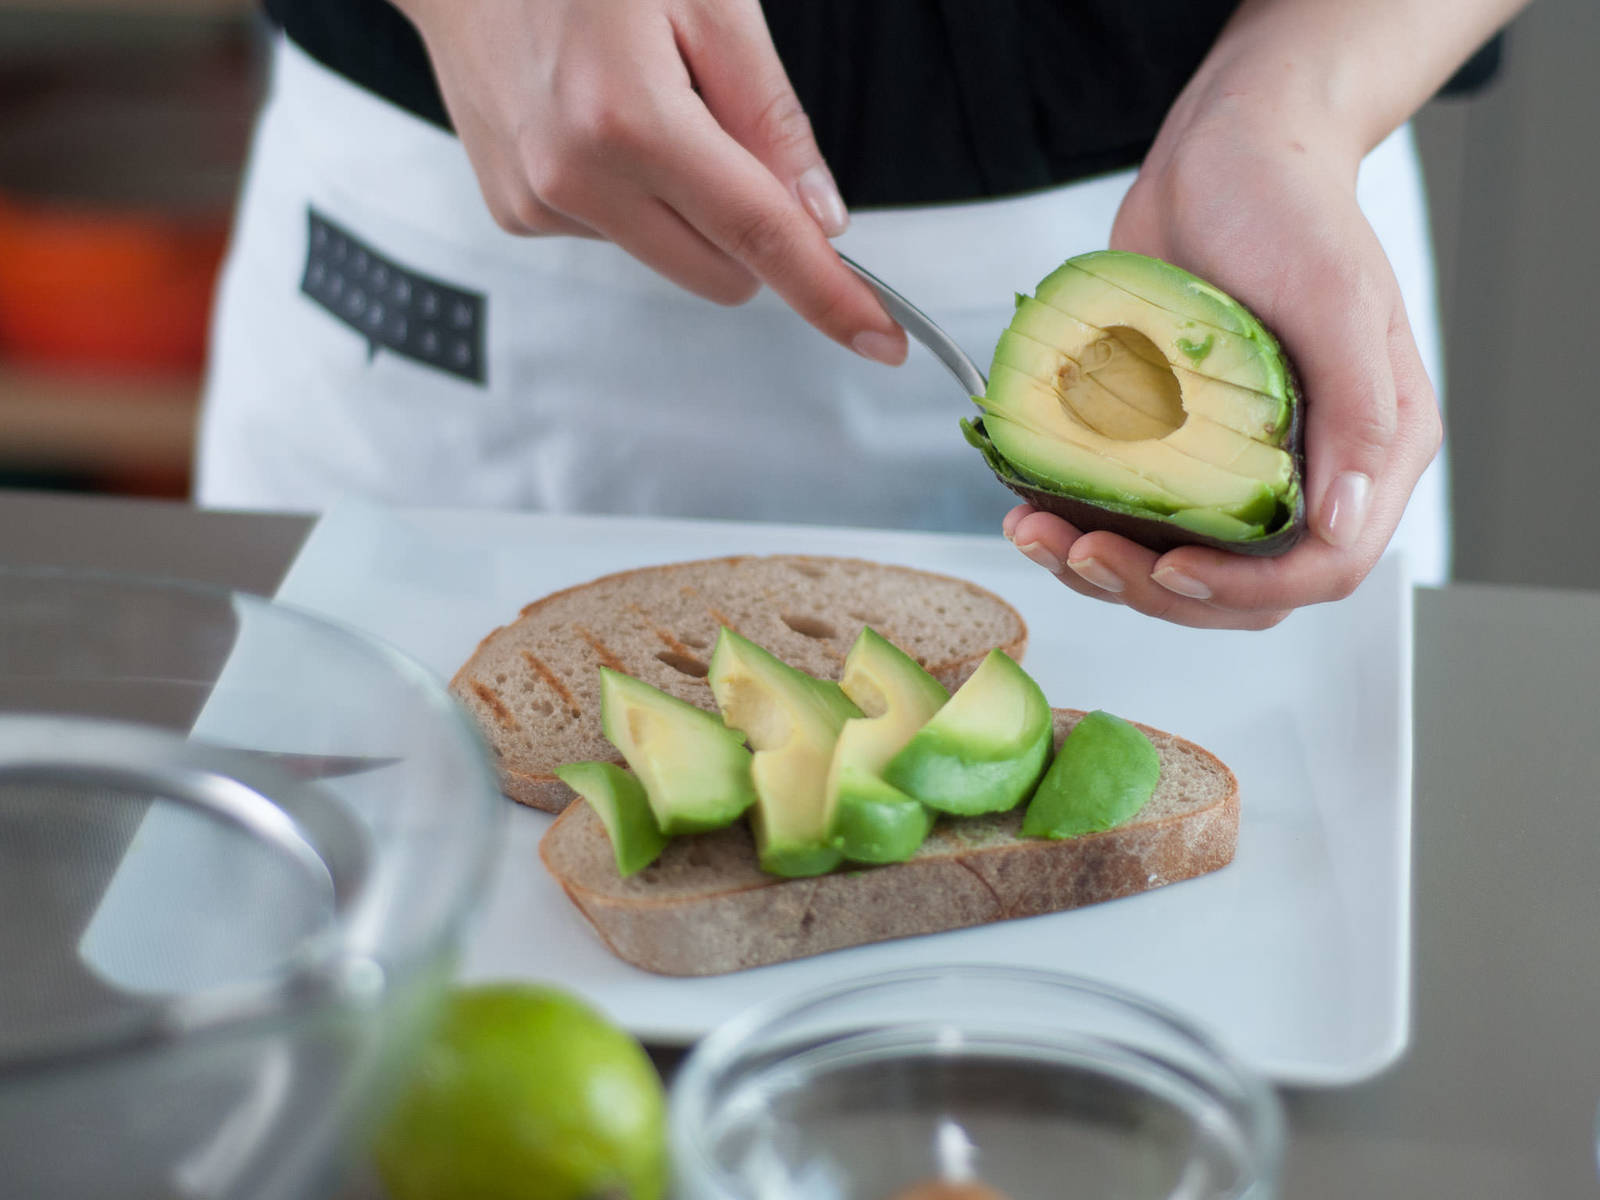 Juice lime. Remove pit from avocado. Slice avocado and layer slices on top of the toast. Season with lime juice, salt, and pepper.